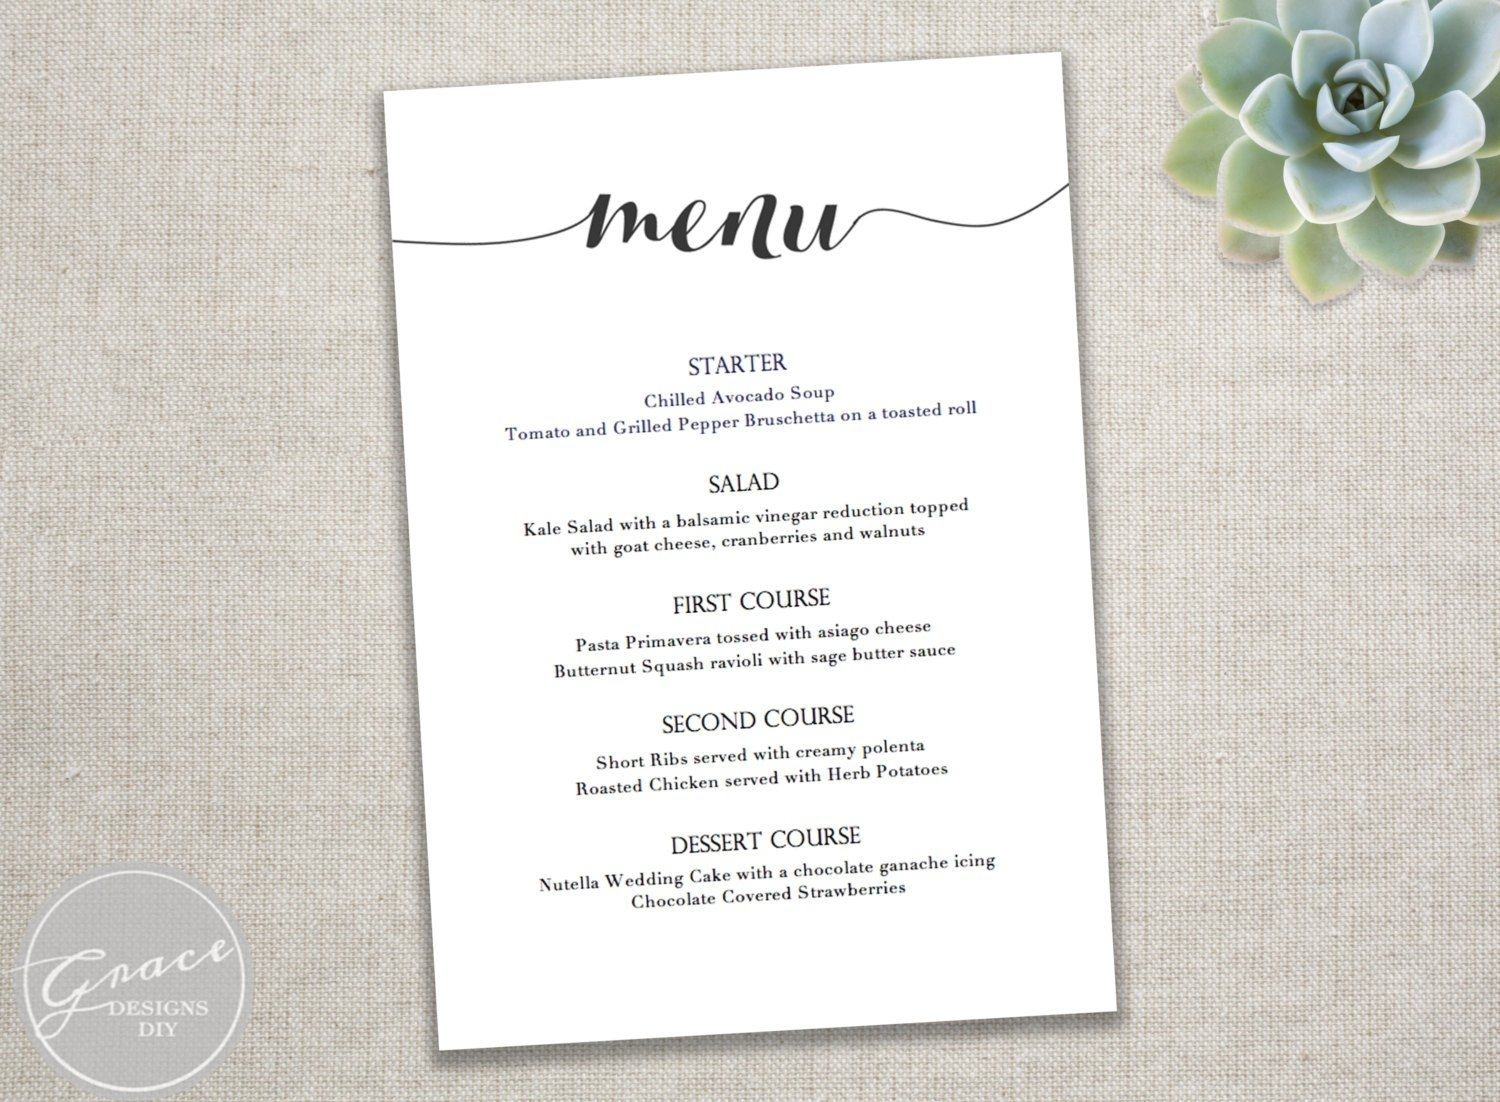 001 Dinner Party Menu Template Templates Filename Infoe Link - Free Printable Dinner Party Menu Template